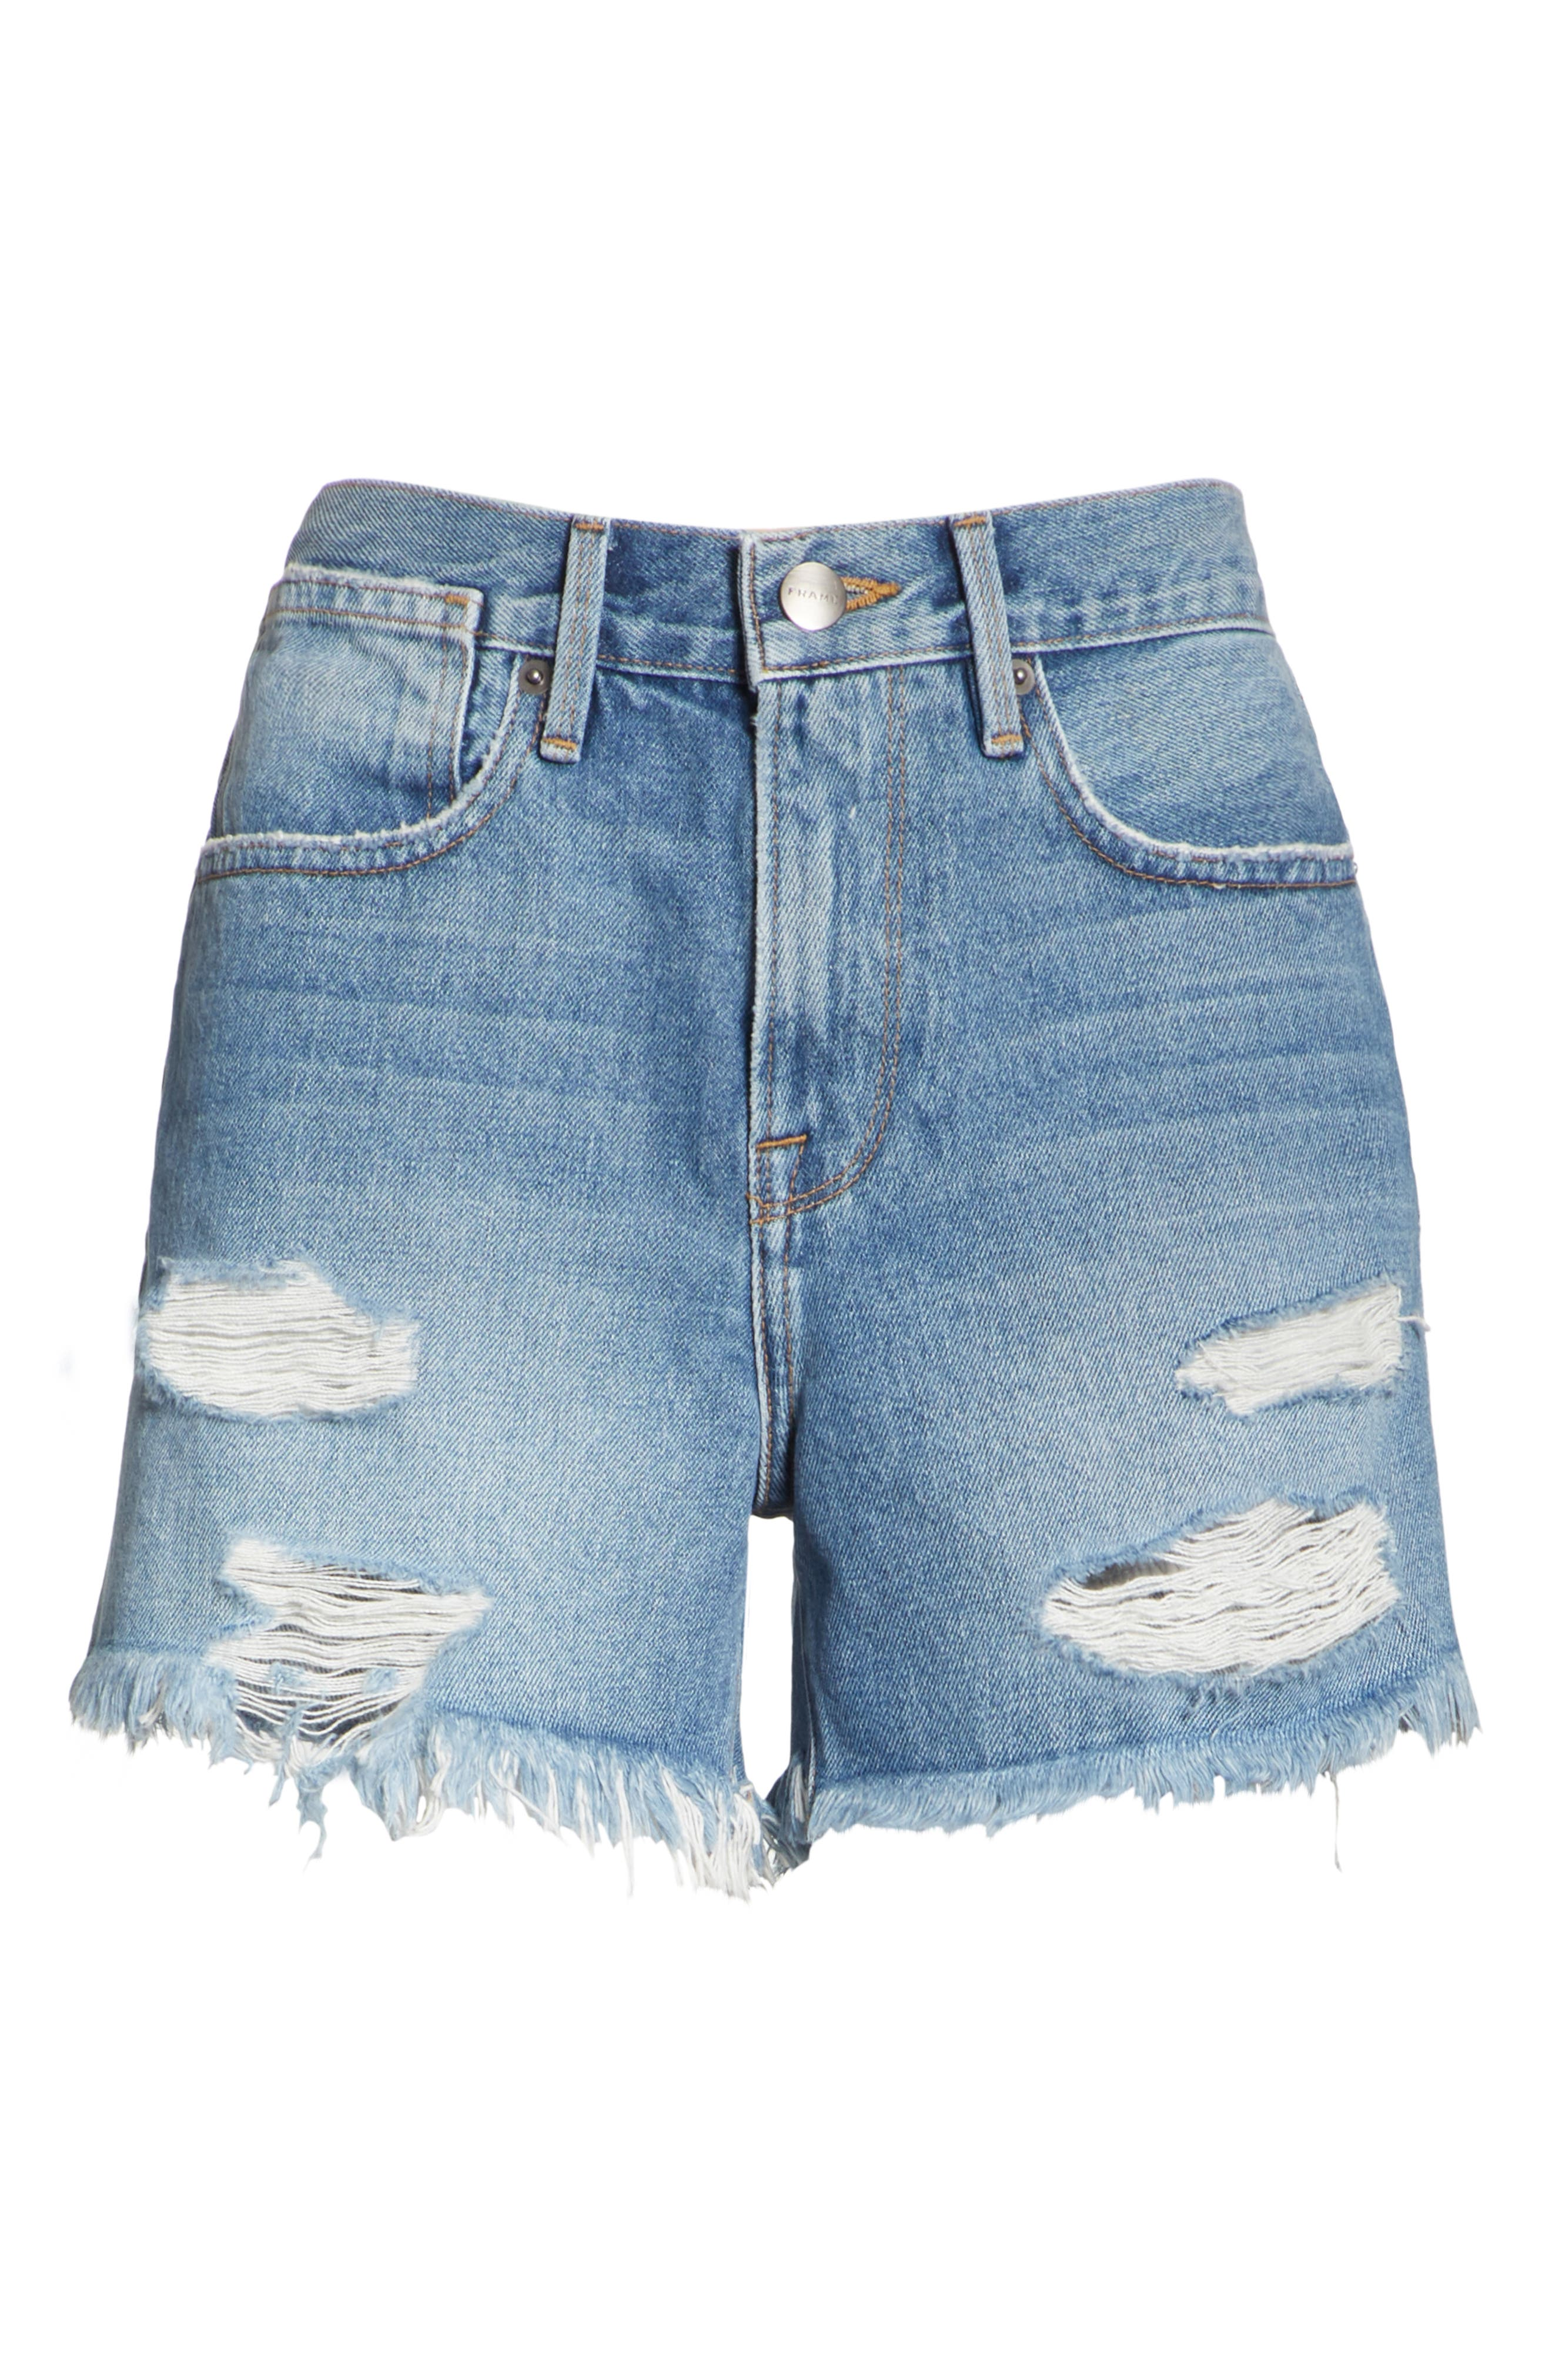 Le Stevie Denim Shorts,                             Alternate thumbnail 6, color,                             401